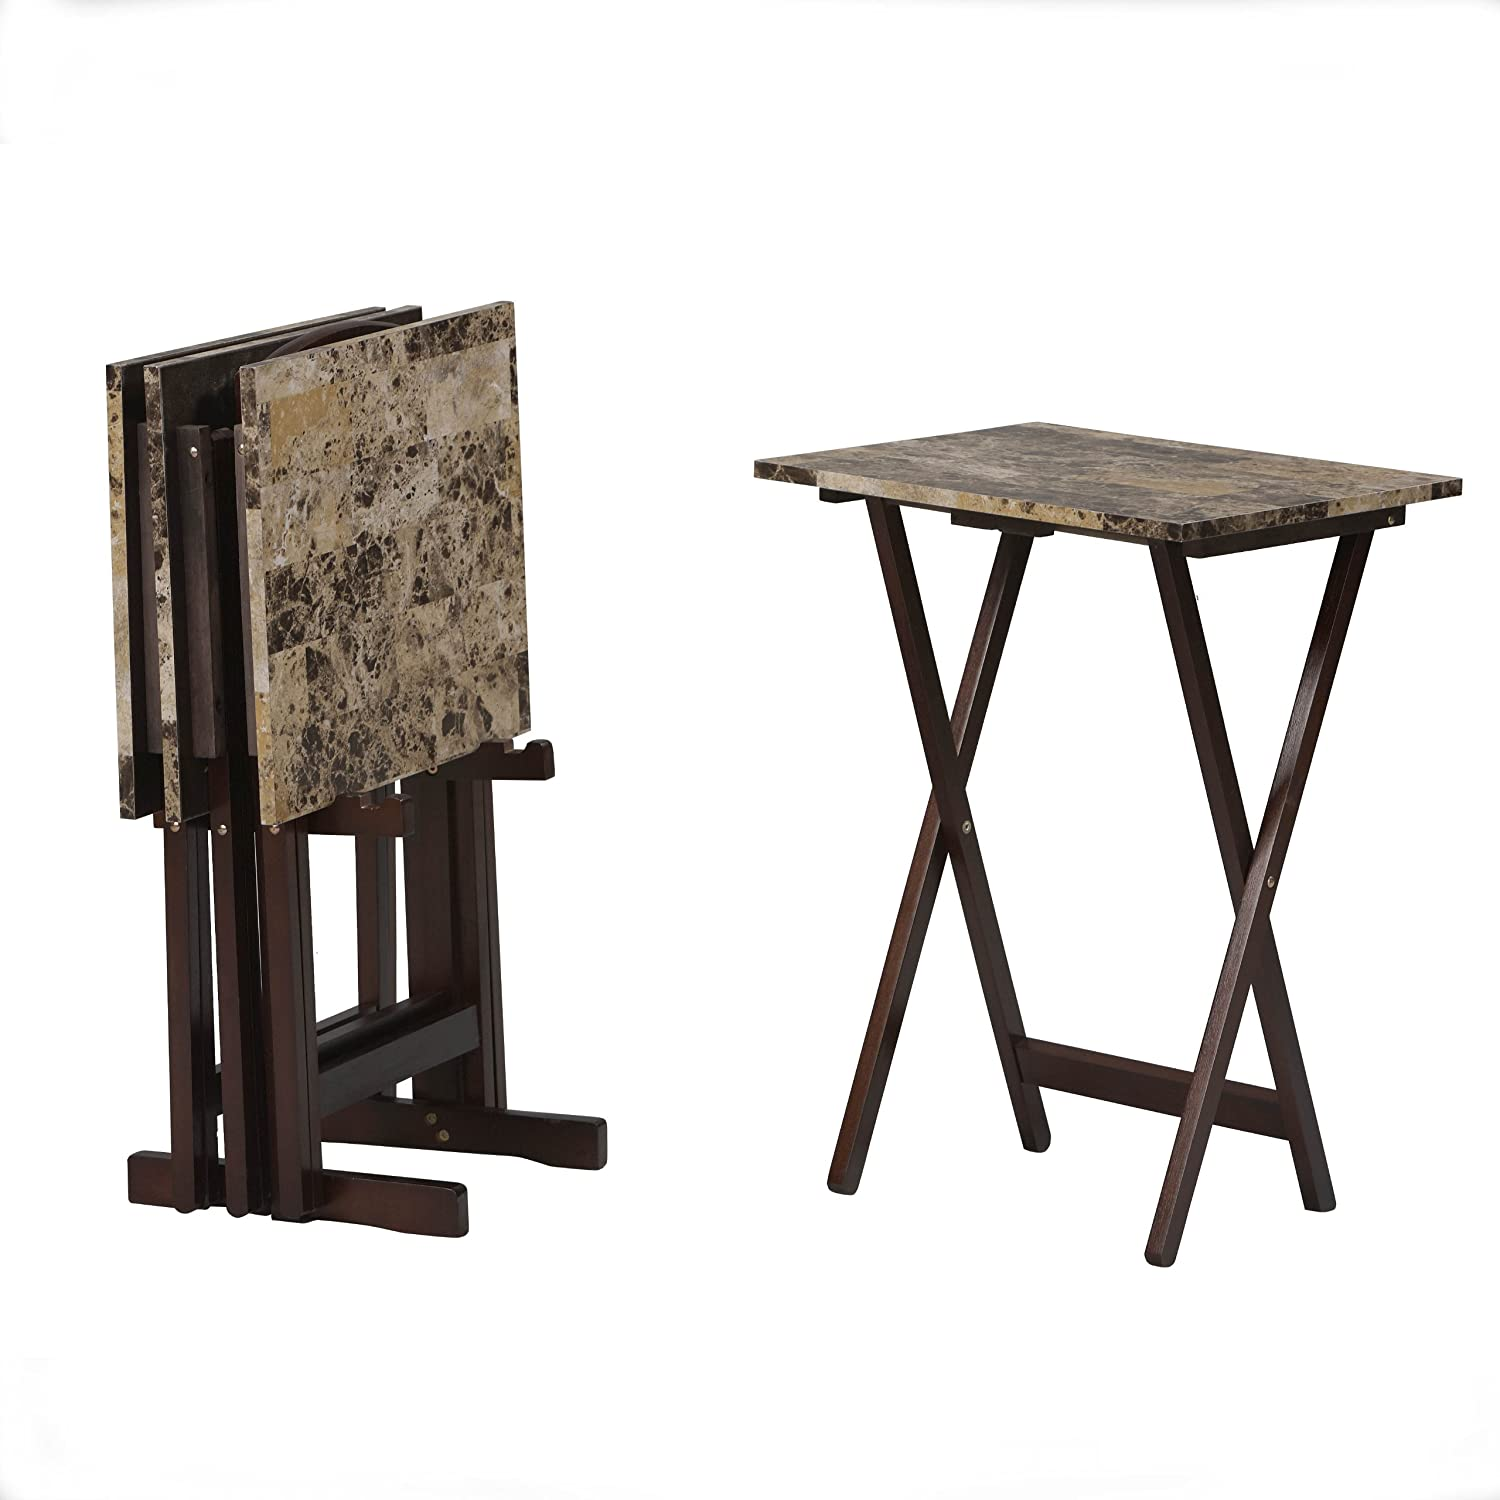 Amazon.com Linon Home Decor Tray Table Set Faux Marble Brown Kitchen u0026 Dining  sc 1 st  Amazon.com & Amazon.com: Linon Home Decor Tray Table Set Faux Marble Brown ...